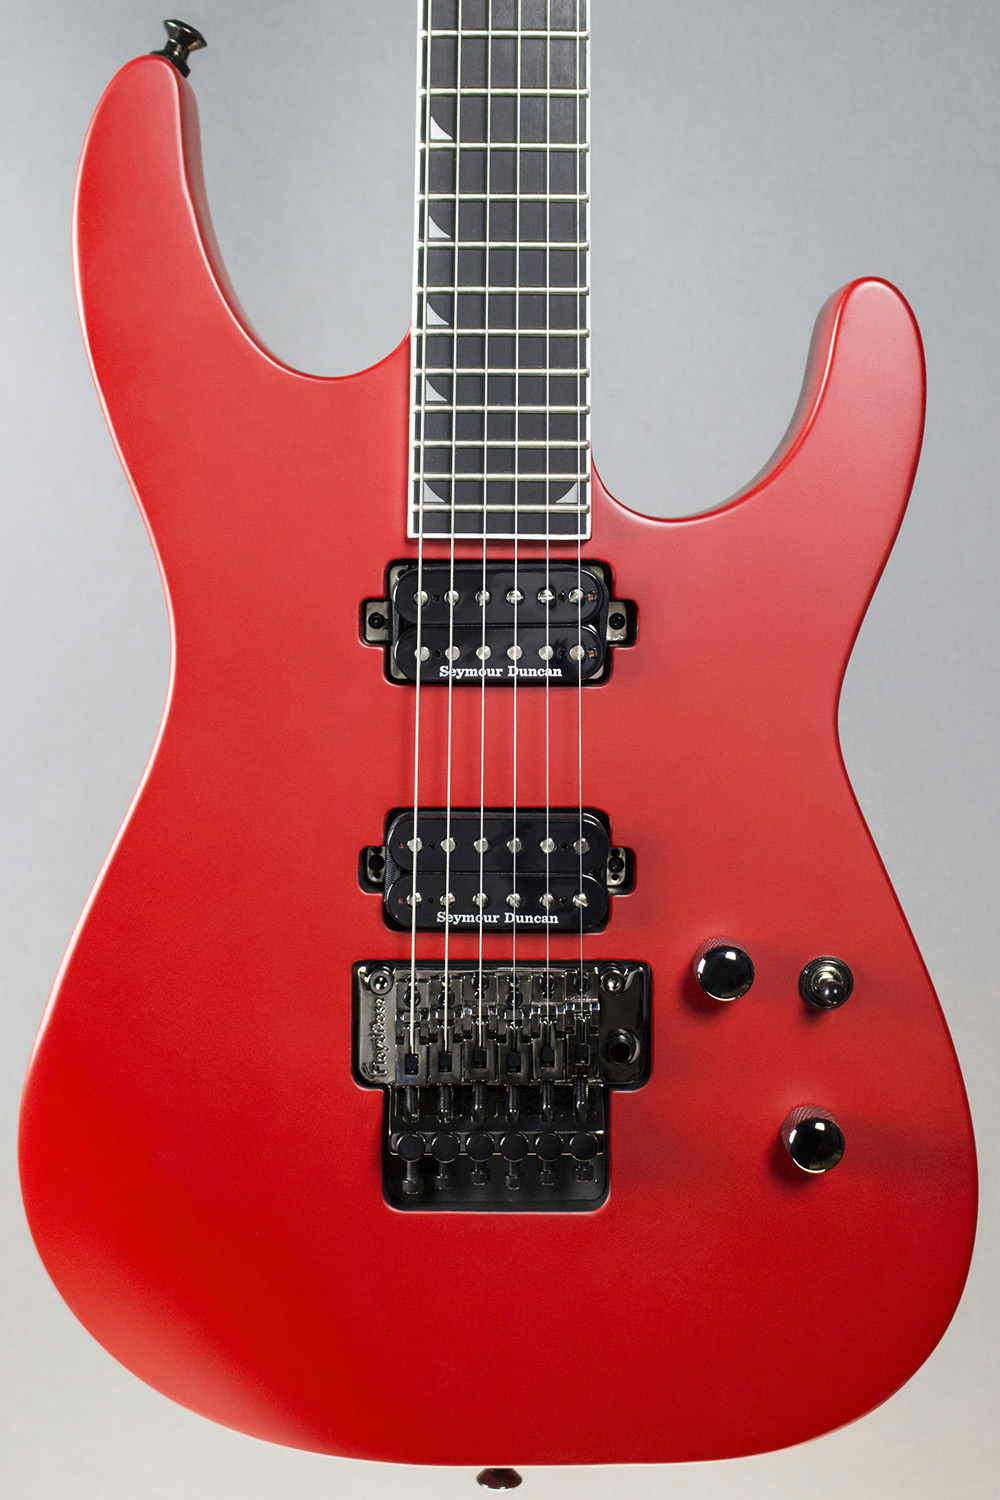 jackson pro series sl2 soloist electric guitar satin red. Black Bedroom Furniture Sets. Home Design Ideas